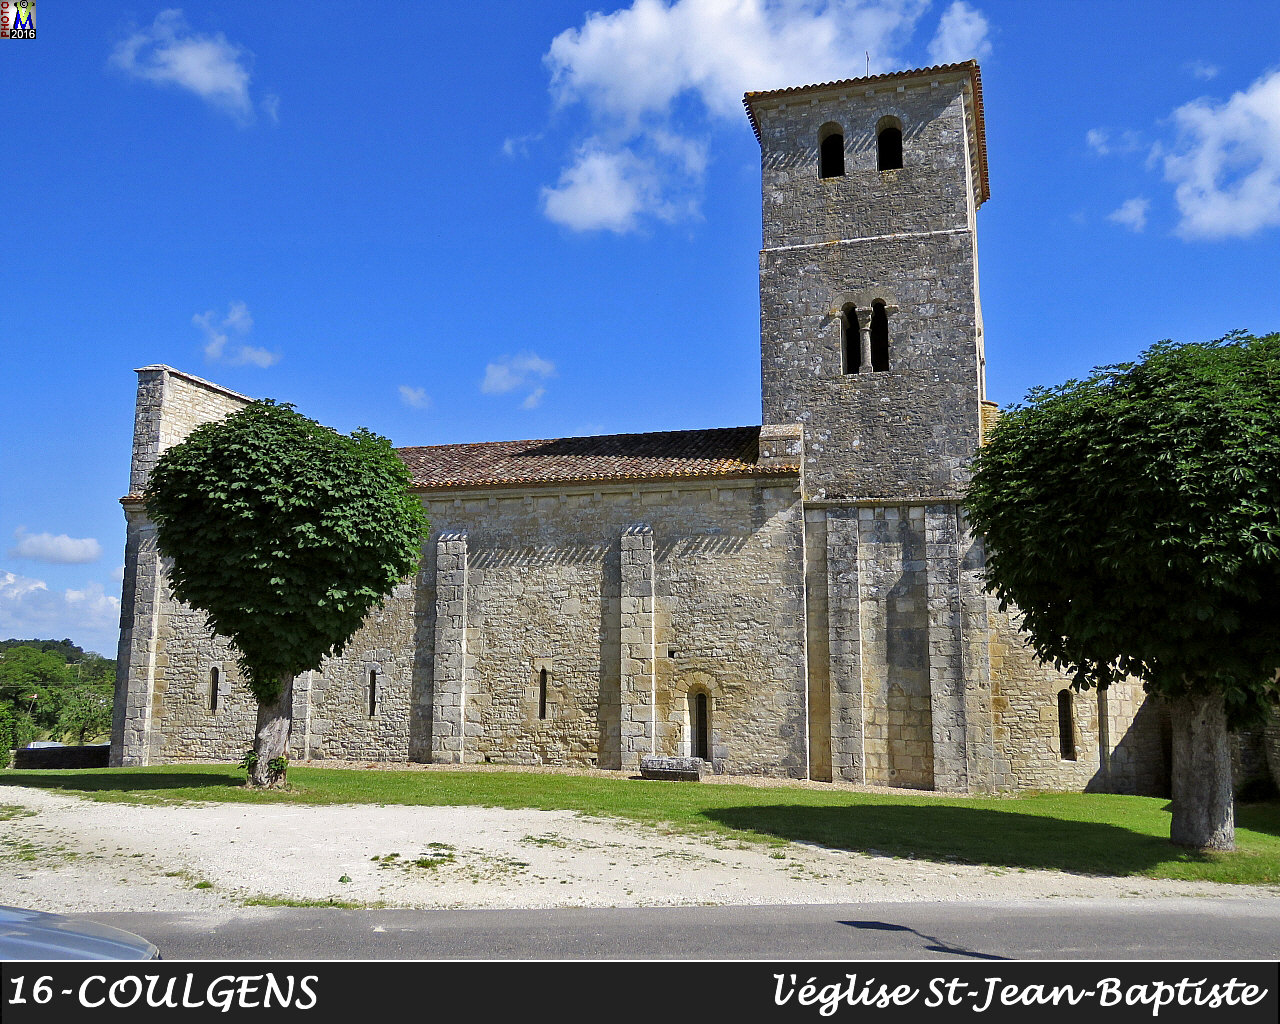 16COULGENS_eglise_1002.jpg